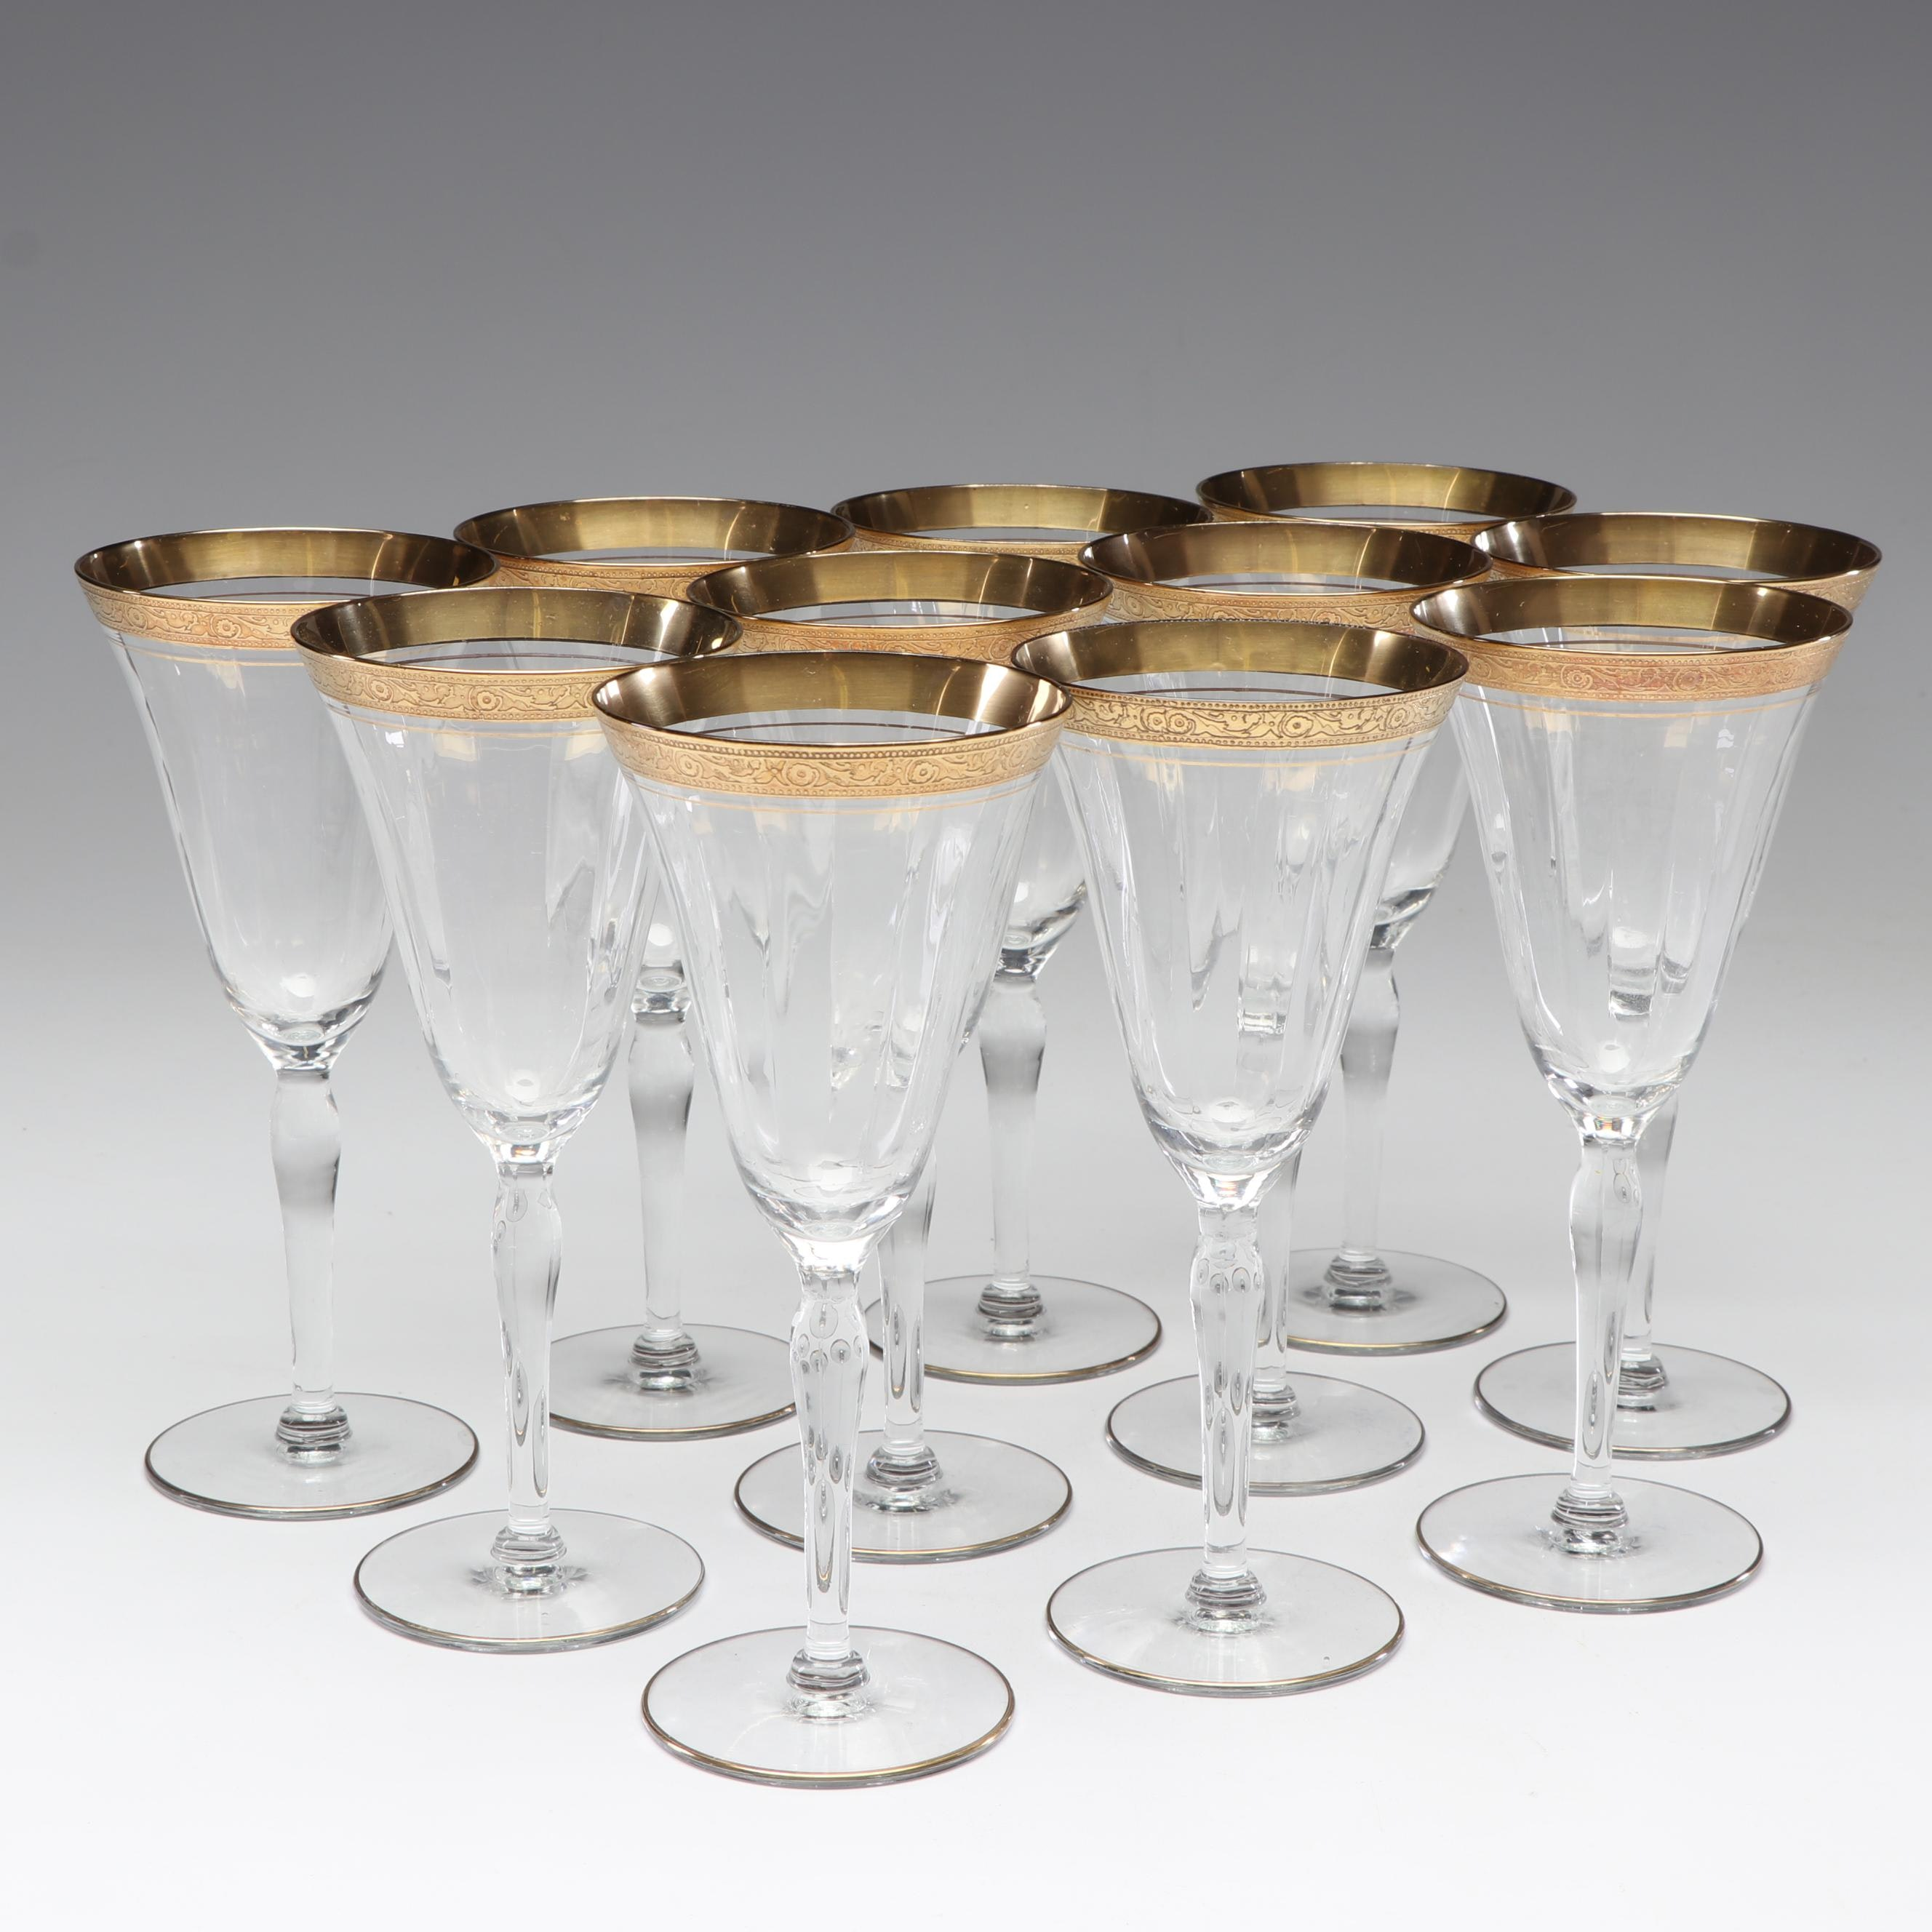 Set of Gold Rimmed Sherry Glasses